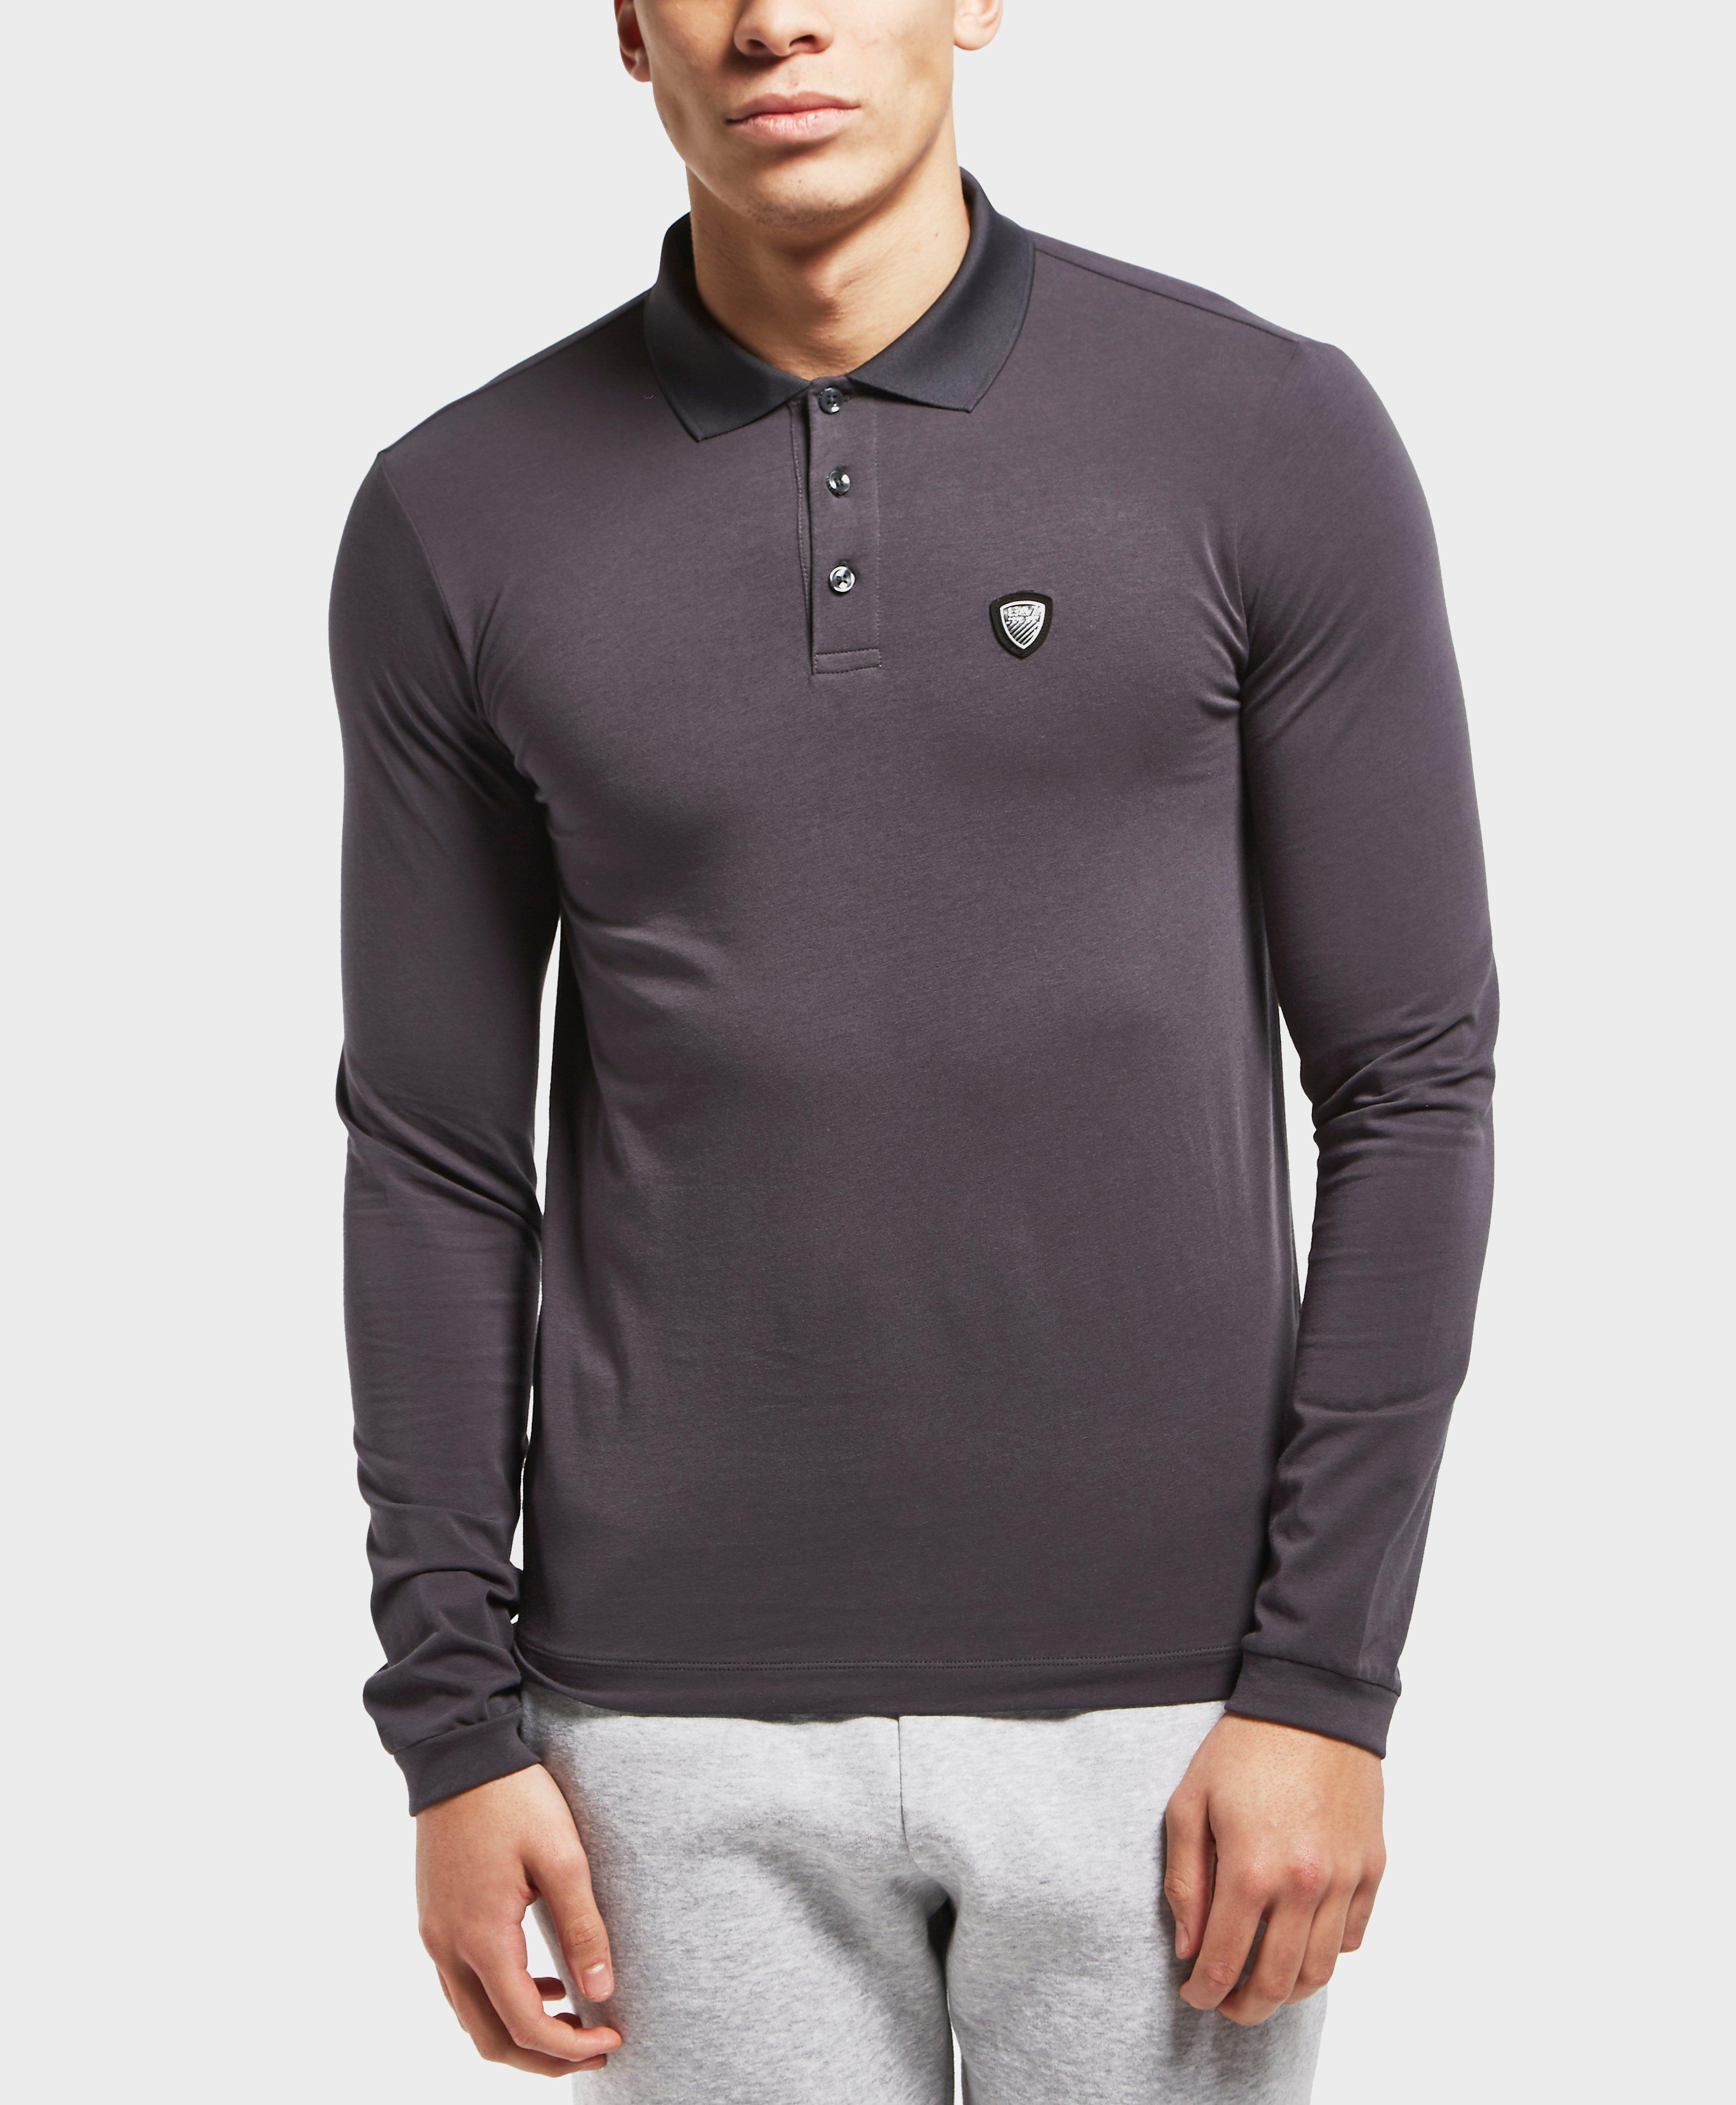 54b788a1695 Lyst - Ea7 Long Sleeve Shield Polo Shirt in Gray for Men